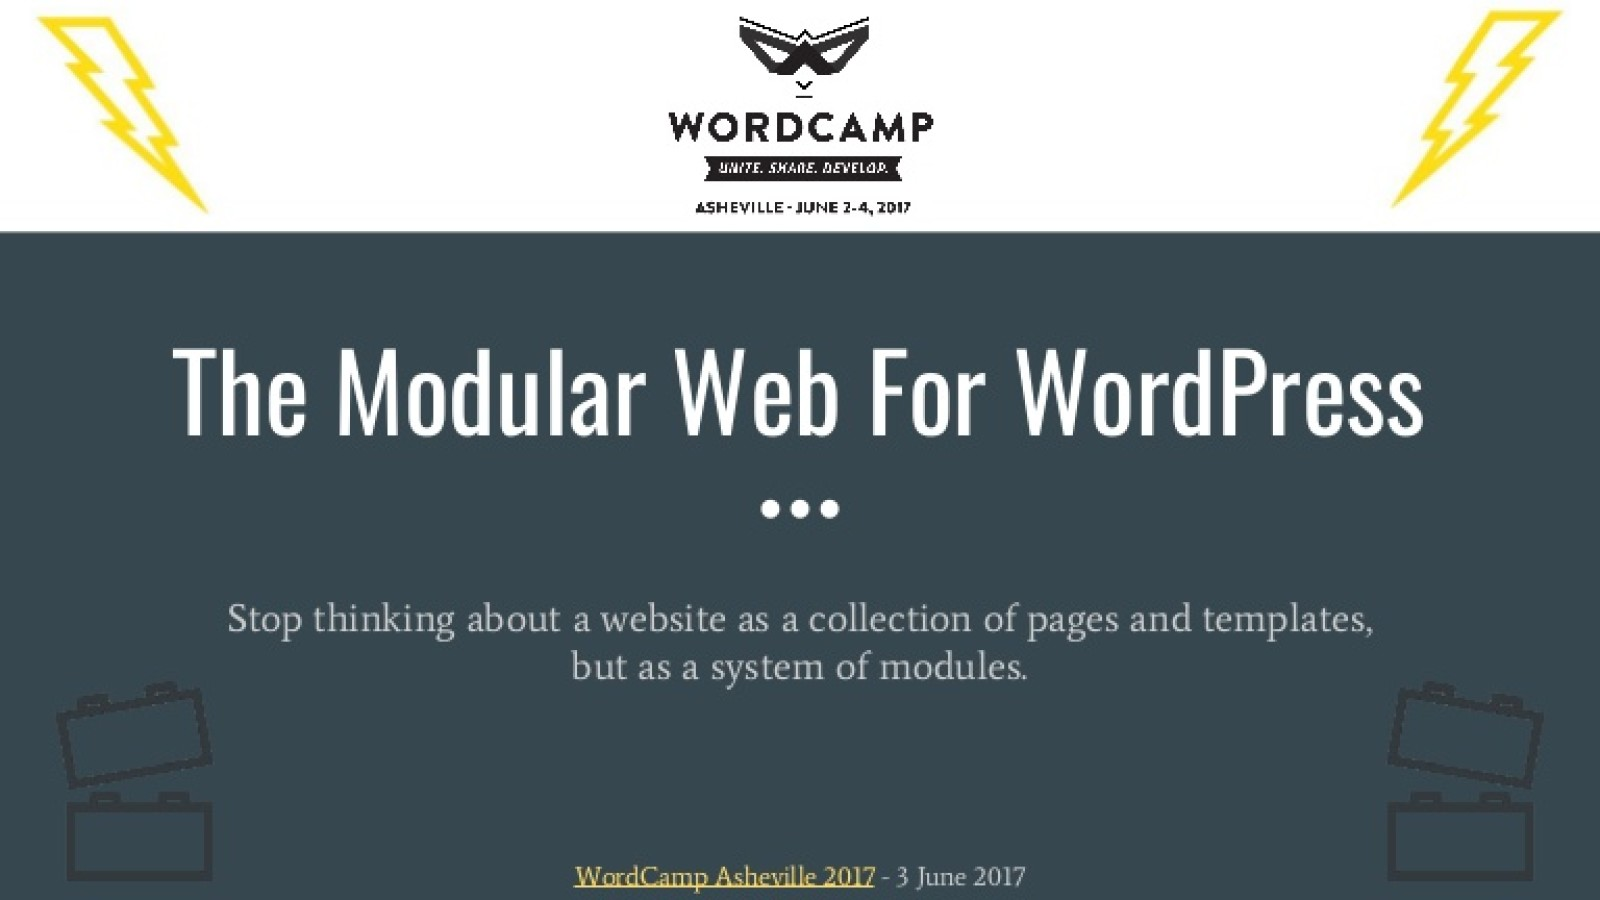 Modular Web for WordPress